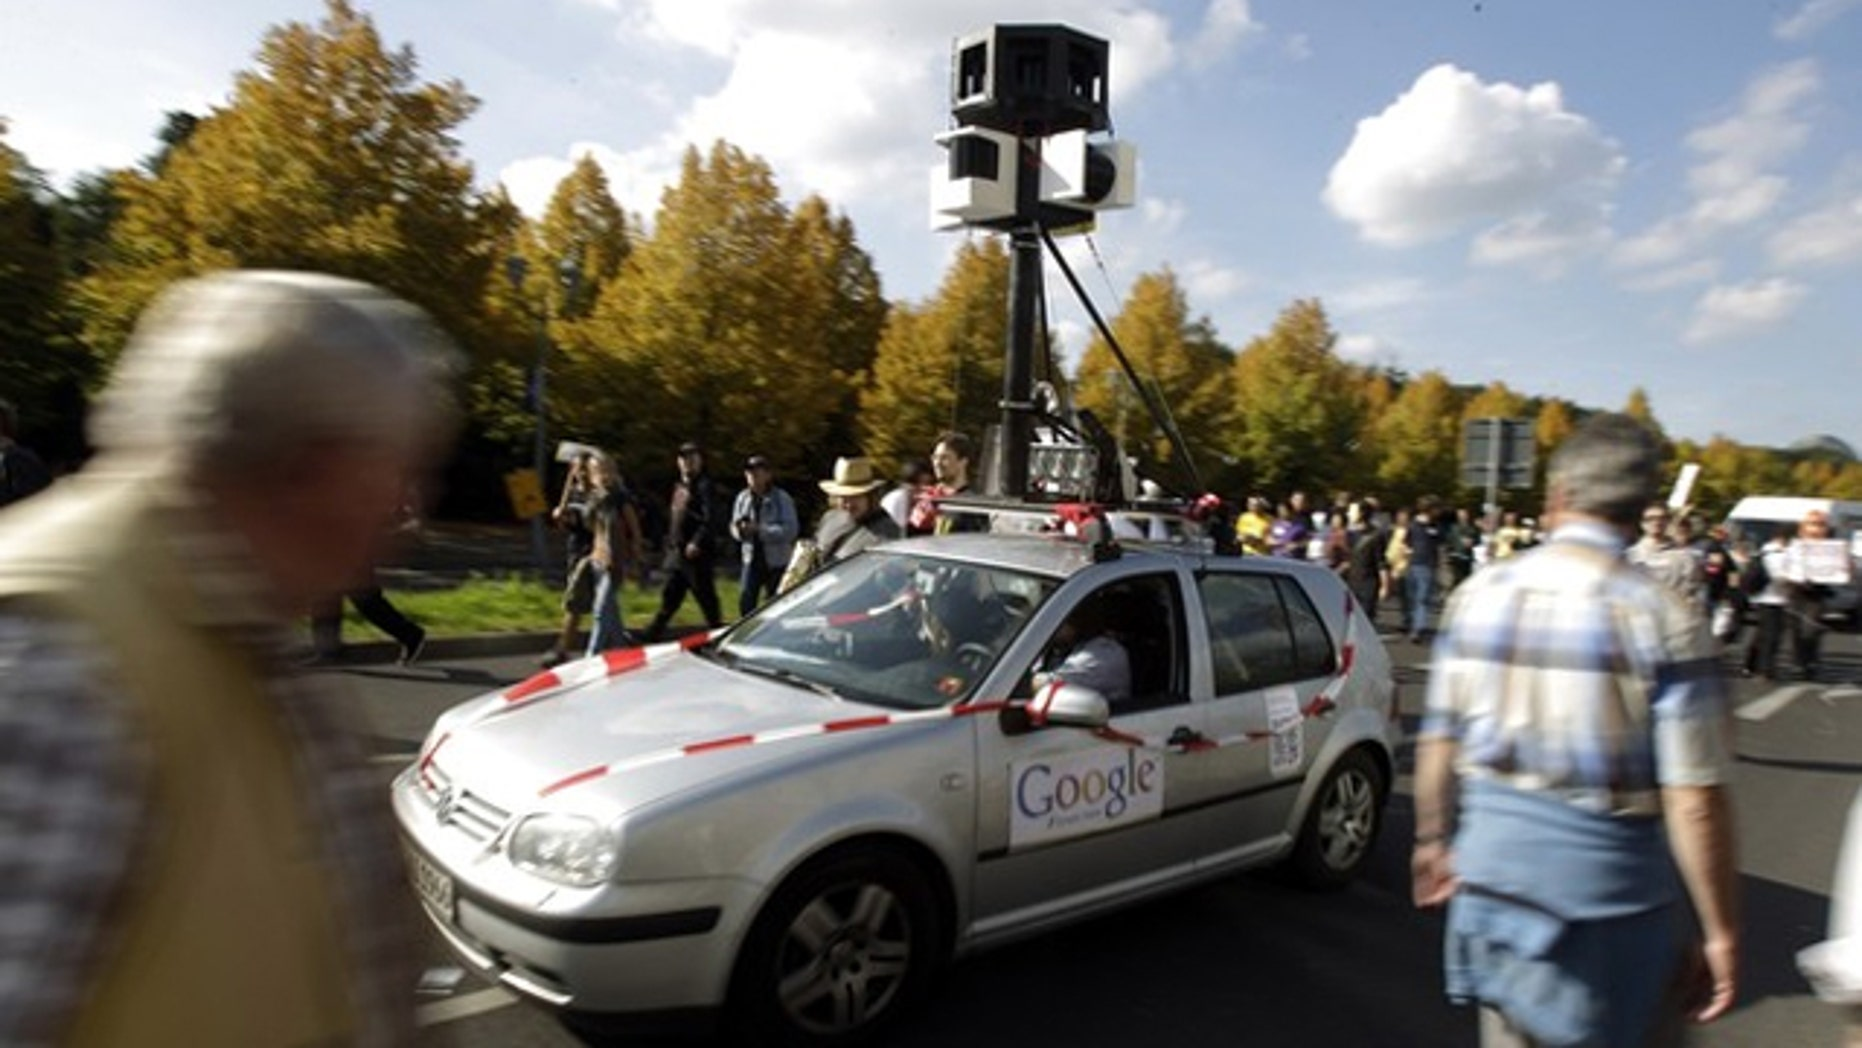 Google mistakenly collected private data through its Street View program.